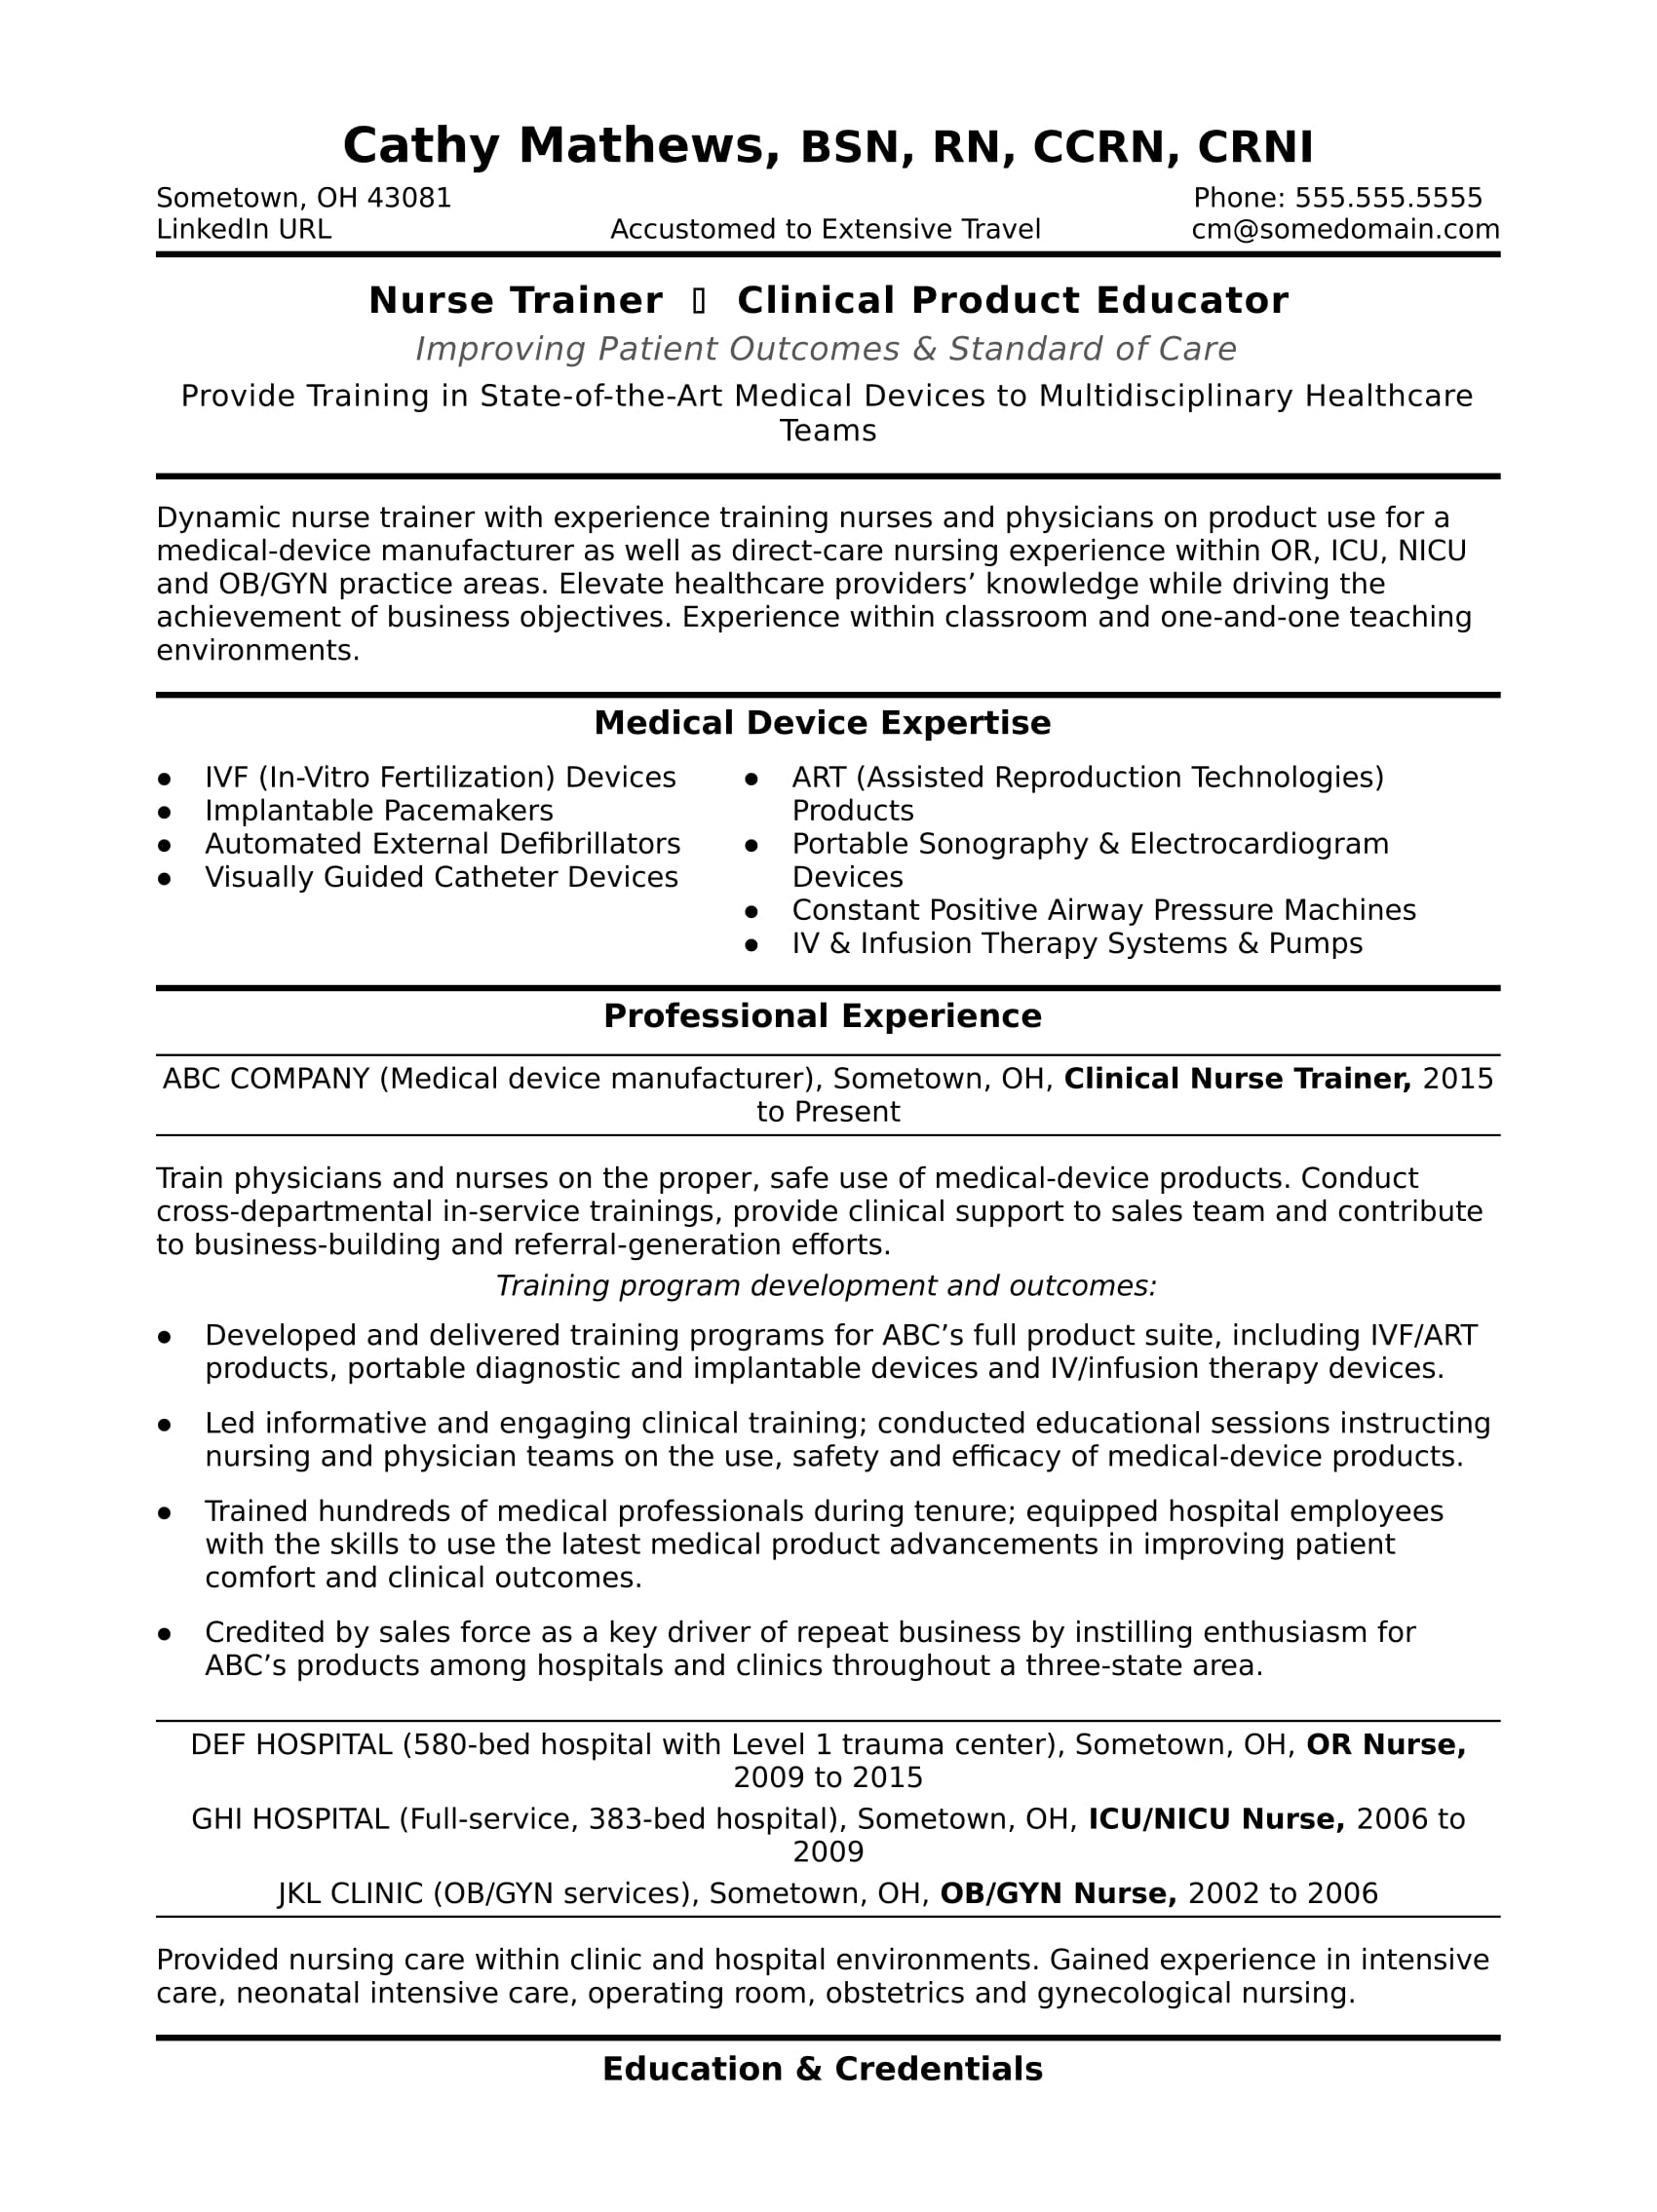 Nurse Trainer Resume Sample Monster